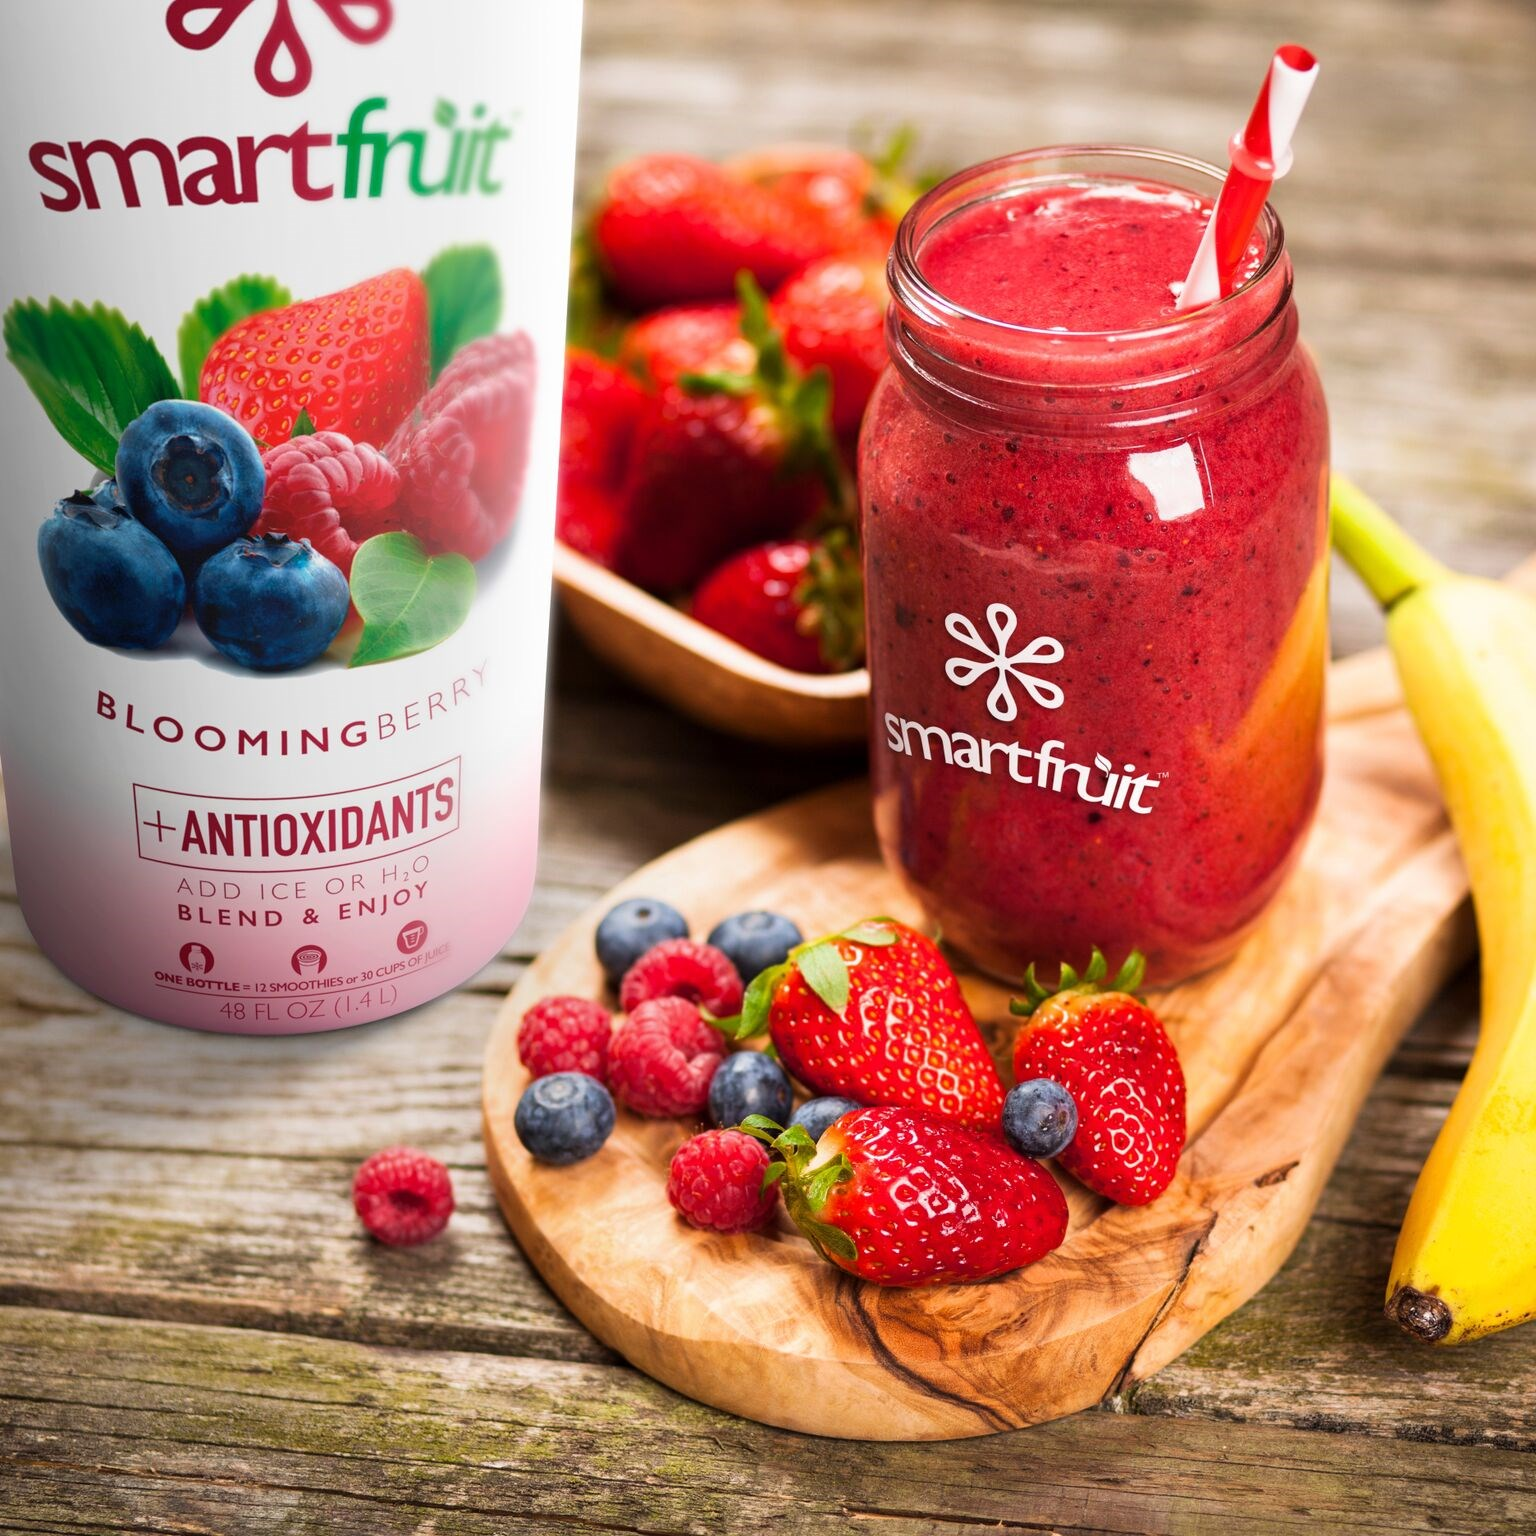 Blissful Blooming Berry Smoothie Made with Smartfruit